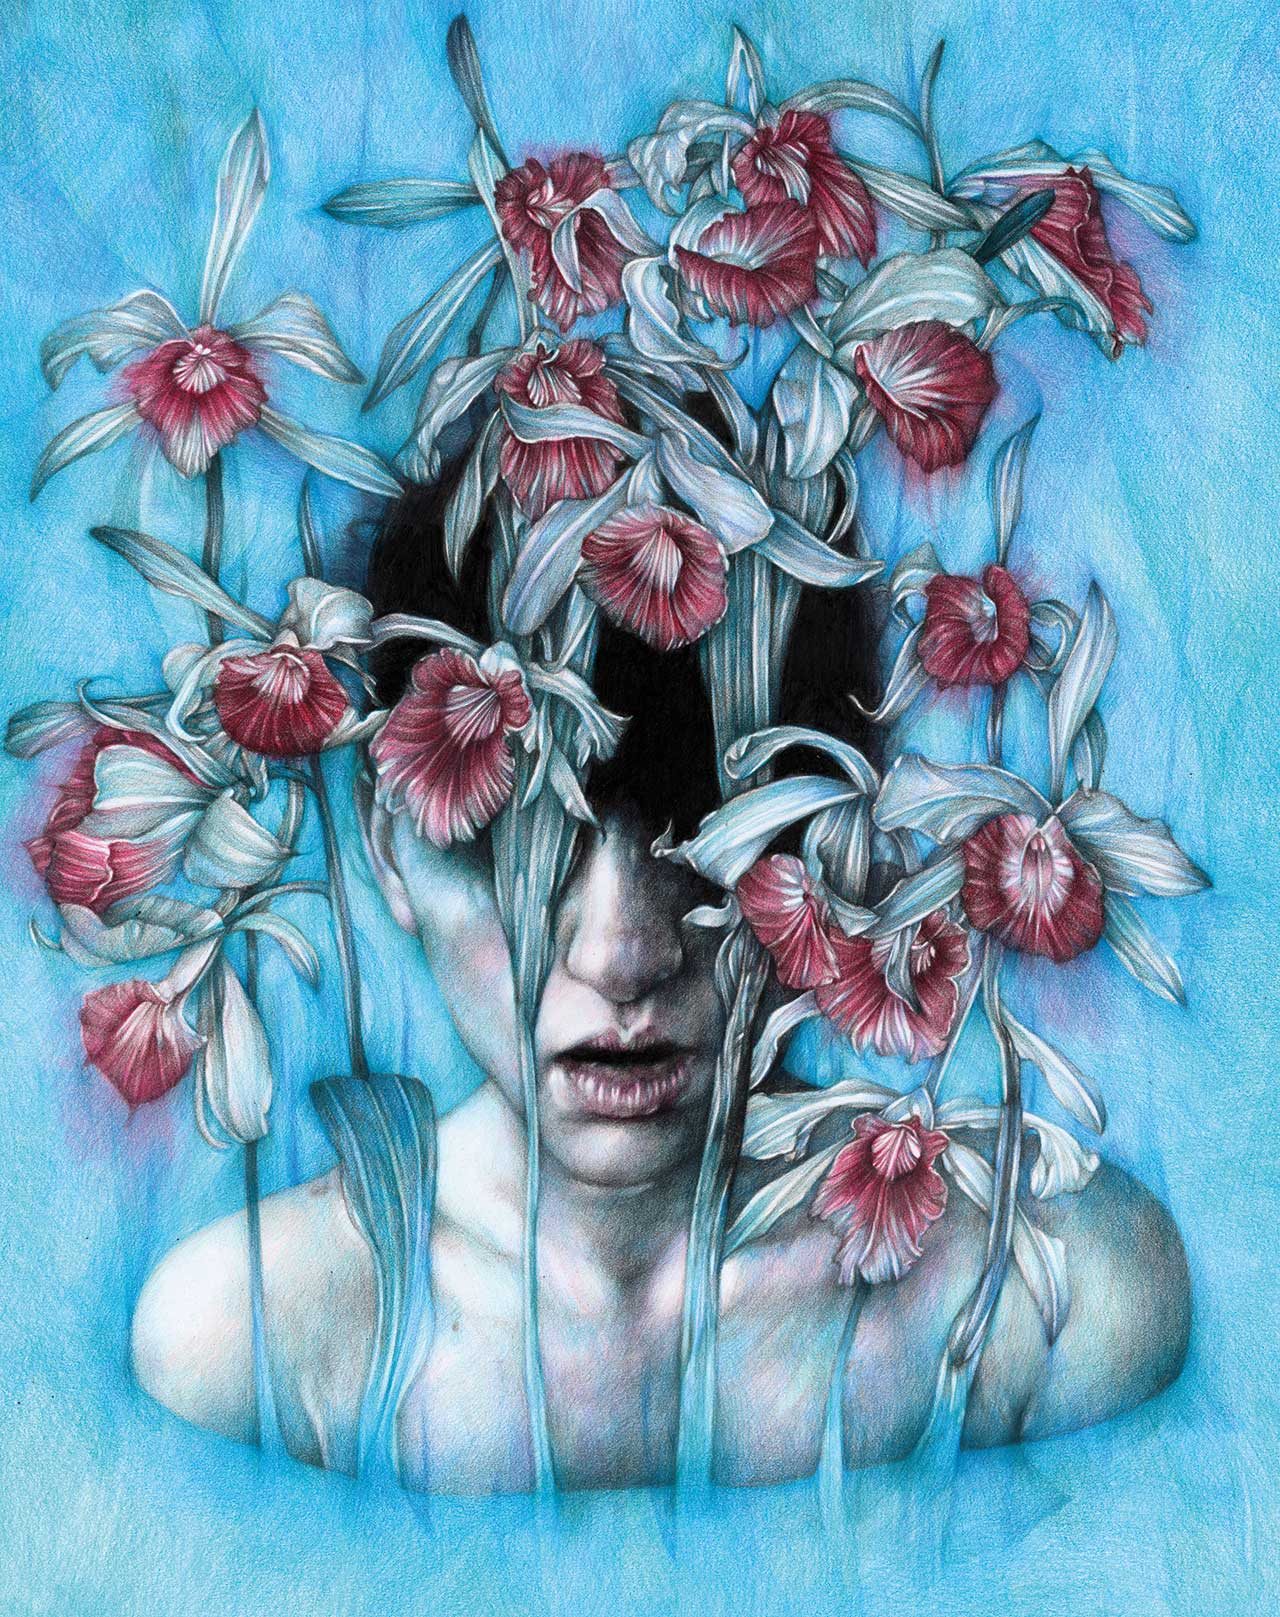 Marco Mazzoni, Regret, colored pencils on paper, 48 x 38cm © Marco Mazzoni.